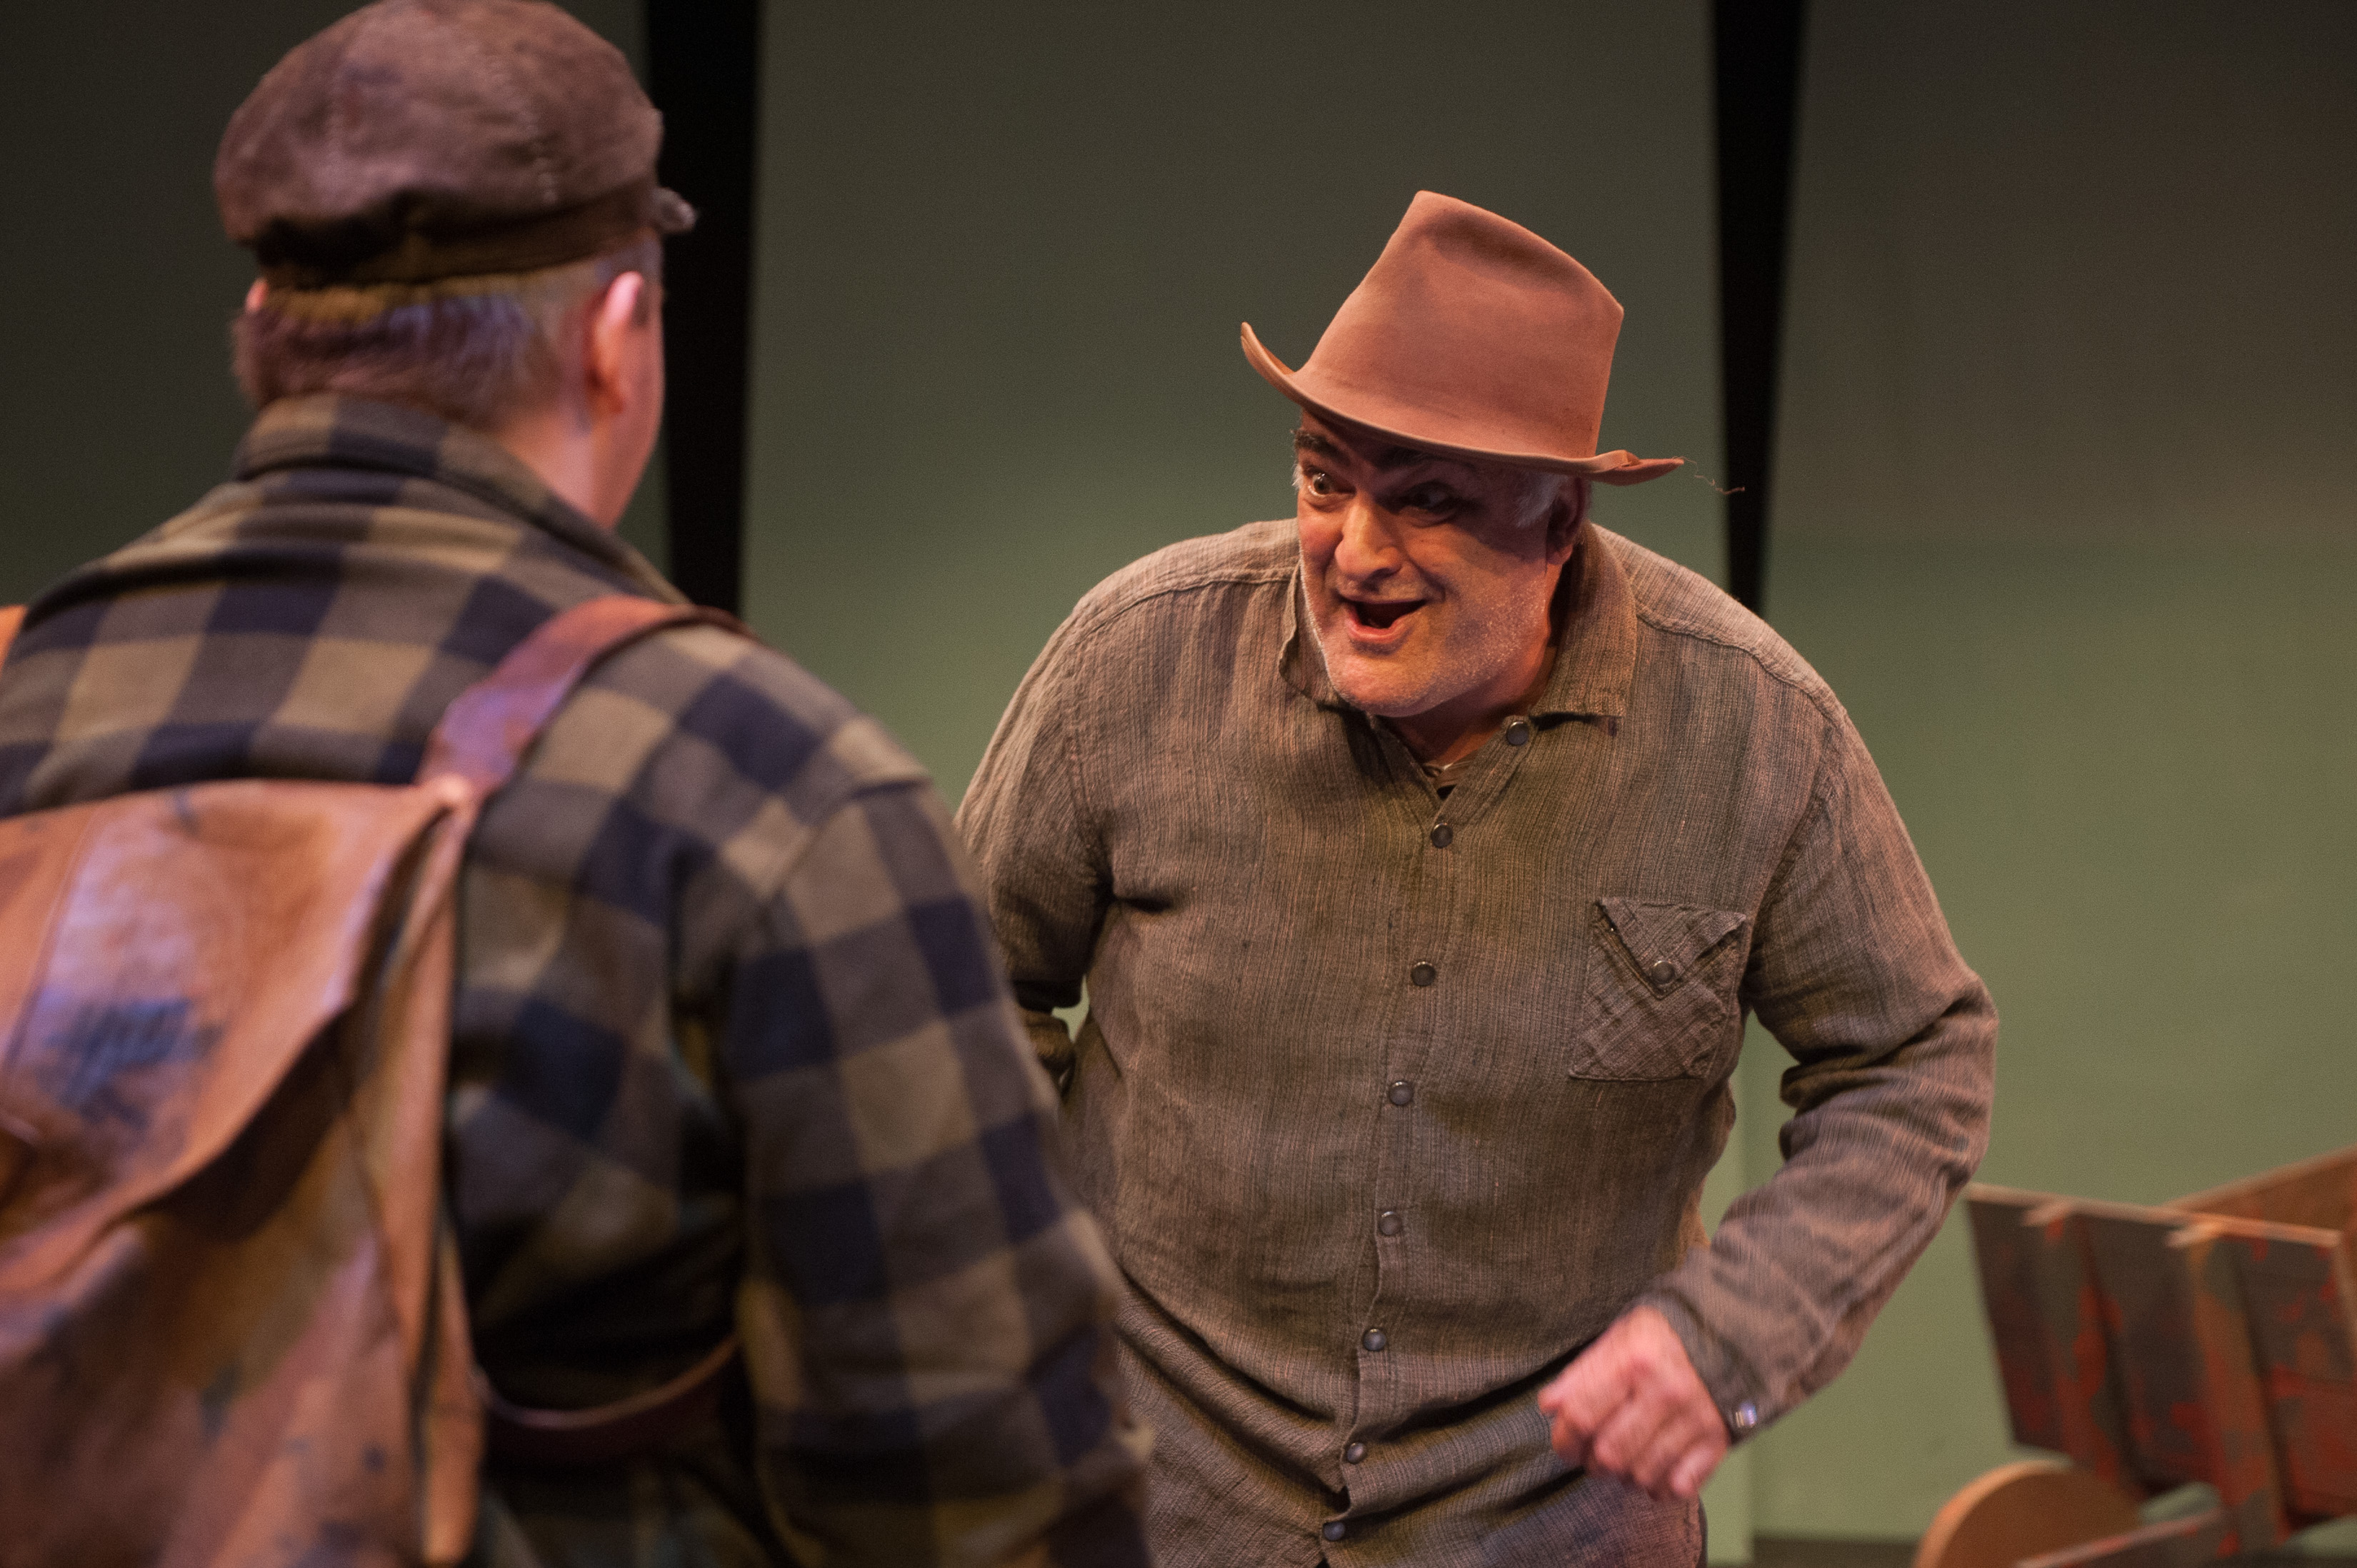 Robert Eddy, First Light Studios captures Mark S. Robert's brilliant portrayal of Ol' Farmer Walter K in this scene from LNT's premiere production of DISAPPEARANCES directed & adapted for stage by Kim Allen Bent